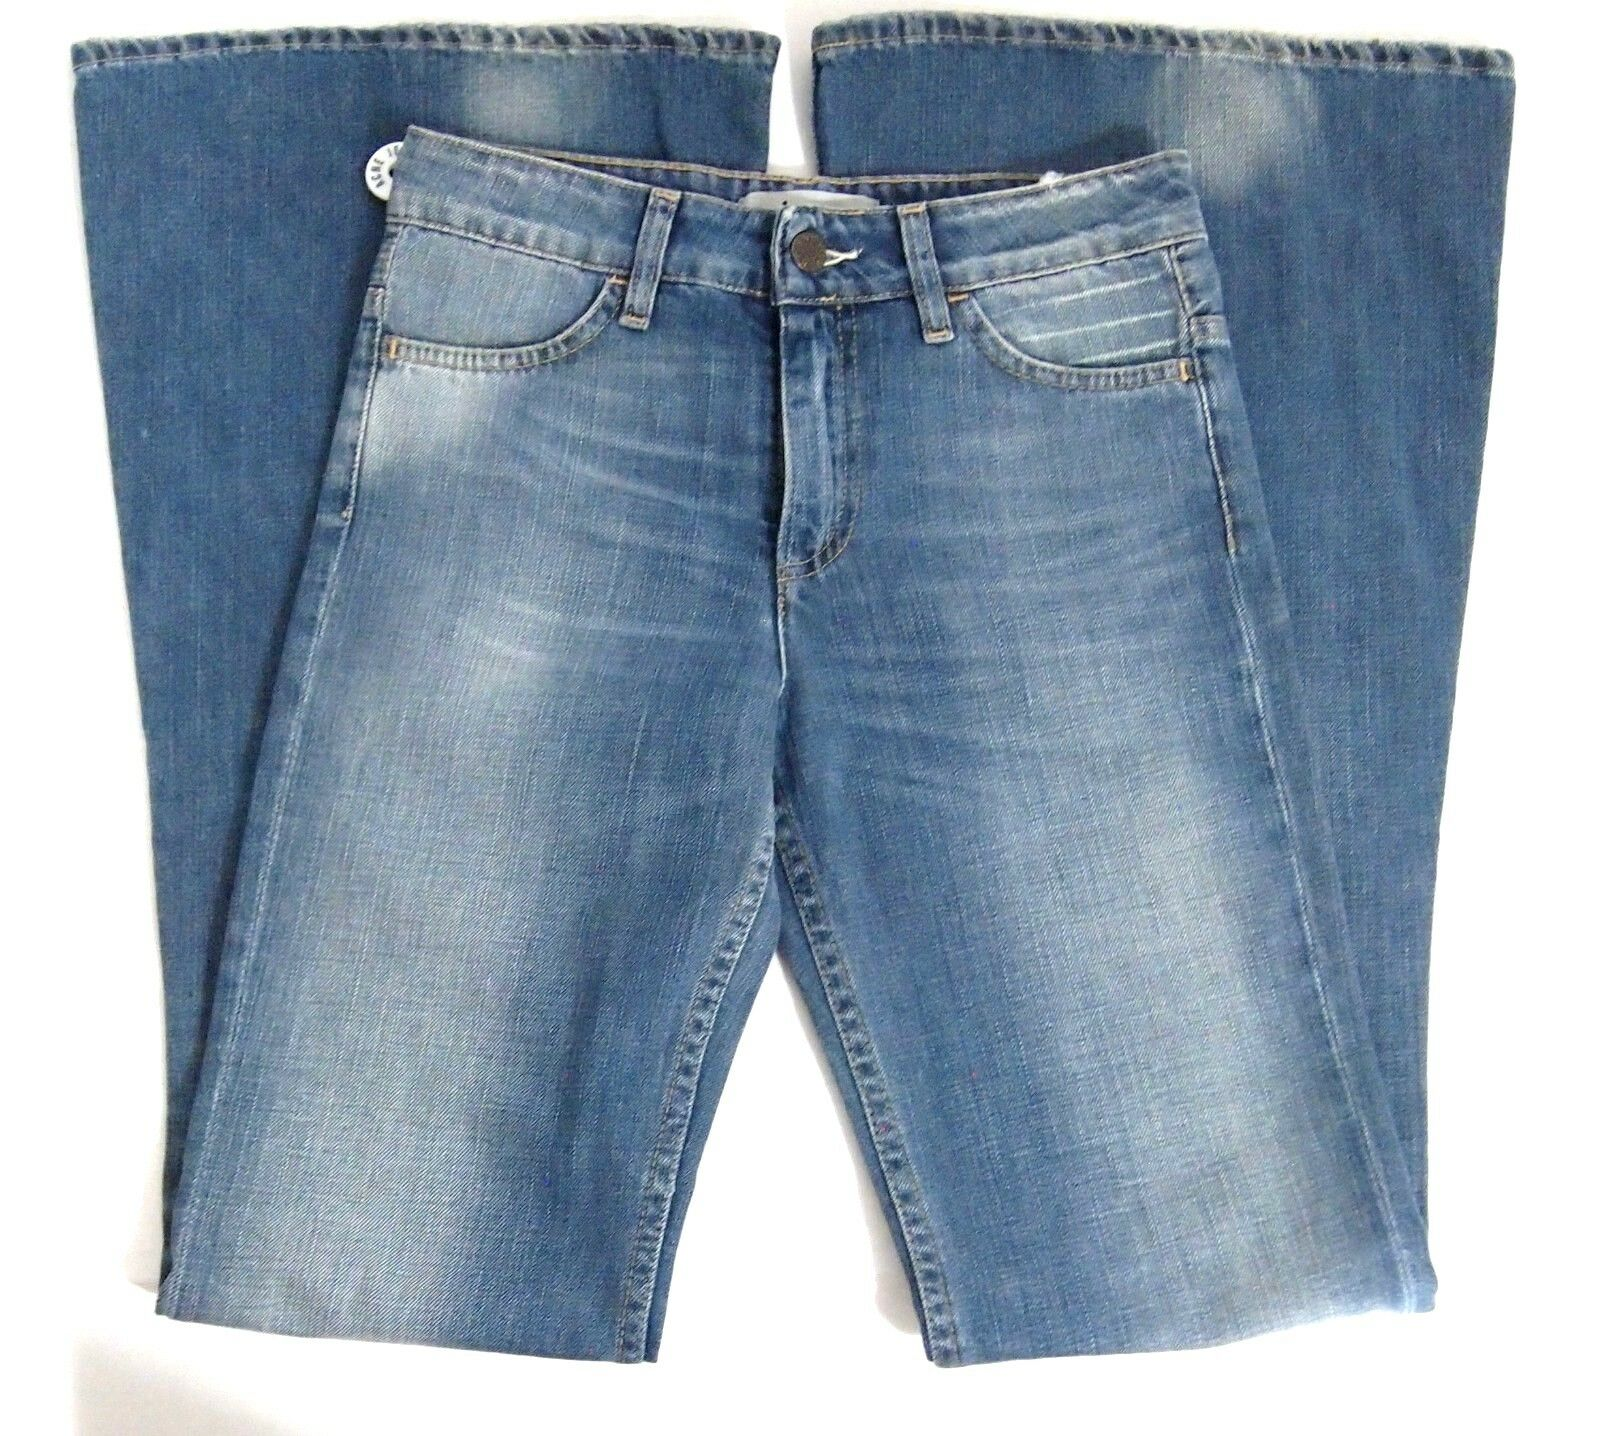 NWOT Acne Studios Womens Jeans 26 Flare Bell Store Mello Medium Wash High Rise